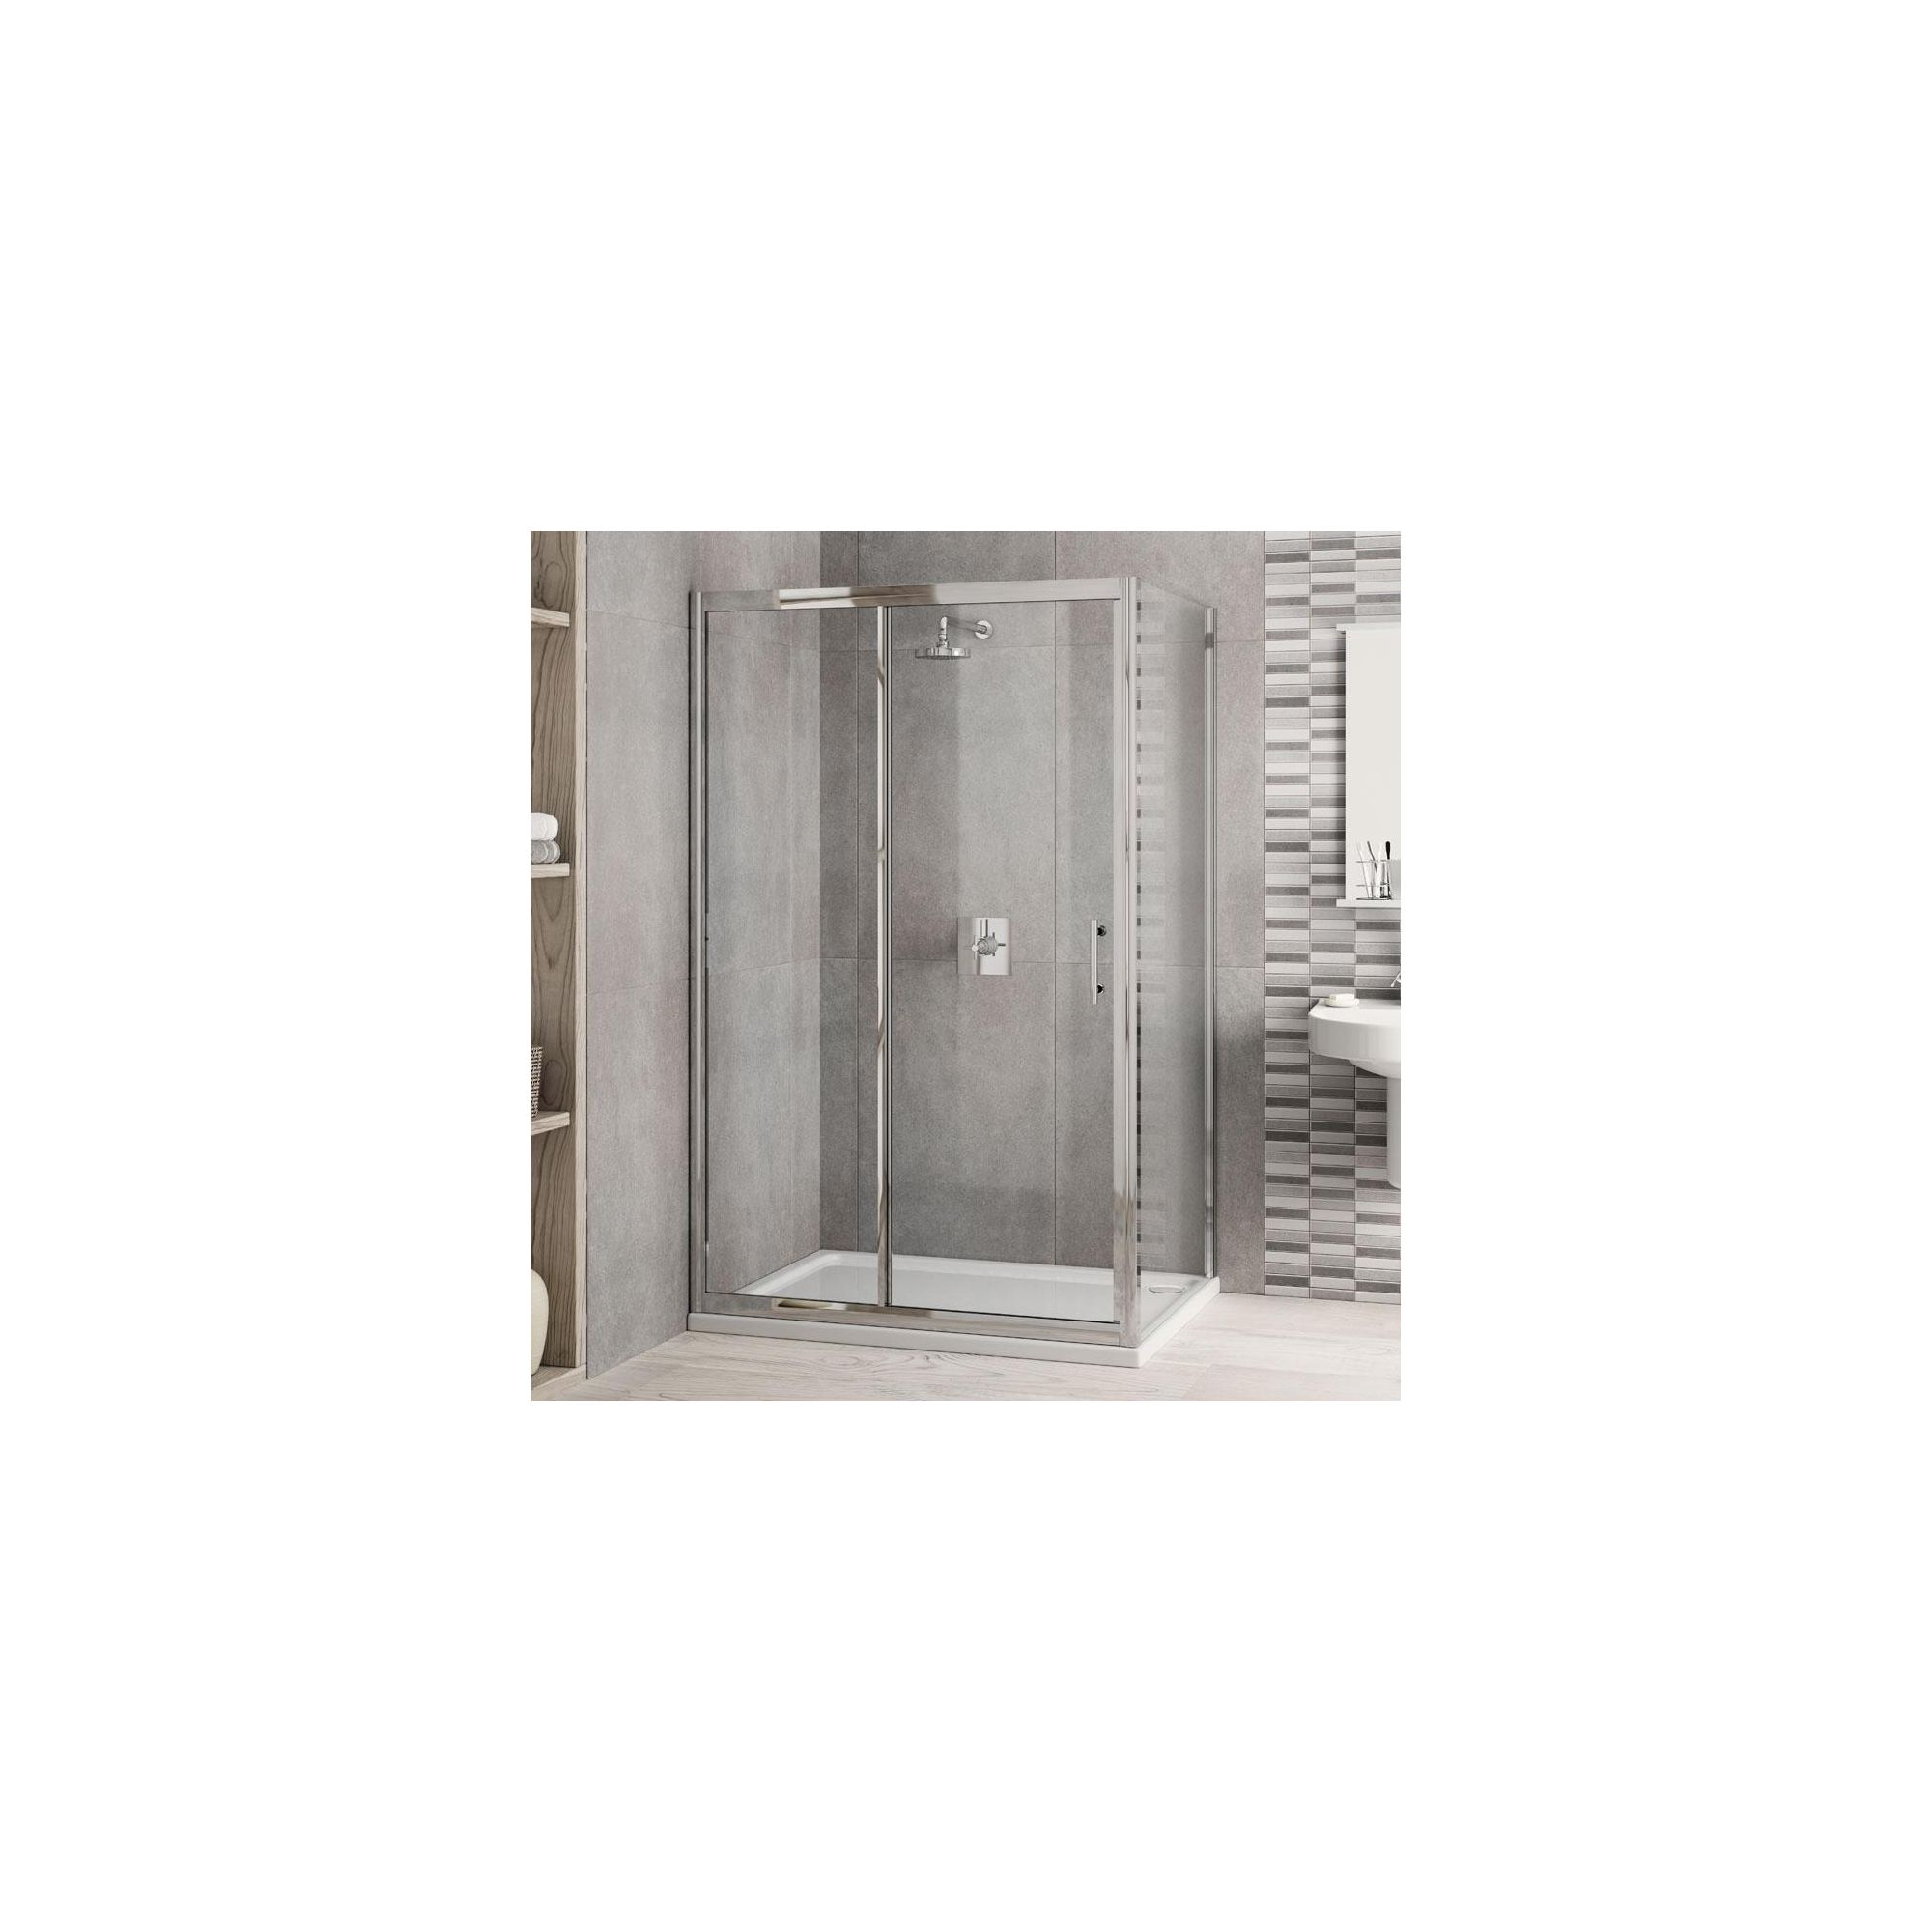 Elemis Inspire Two-Panel Jumbo Sliding Door Shower Enclosure, 1400mm x 900mm, 6mm Glass, Low Profile Tray at Tesco Direct